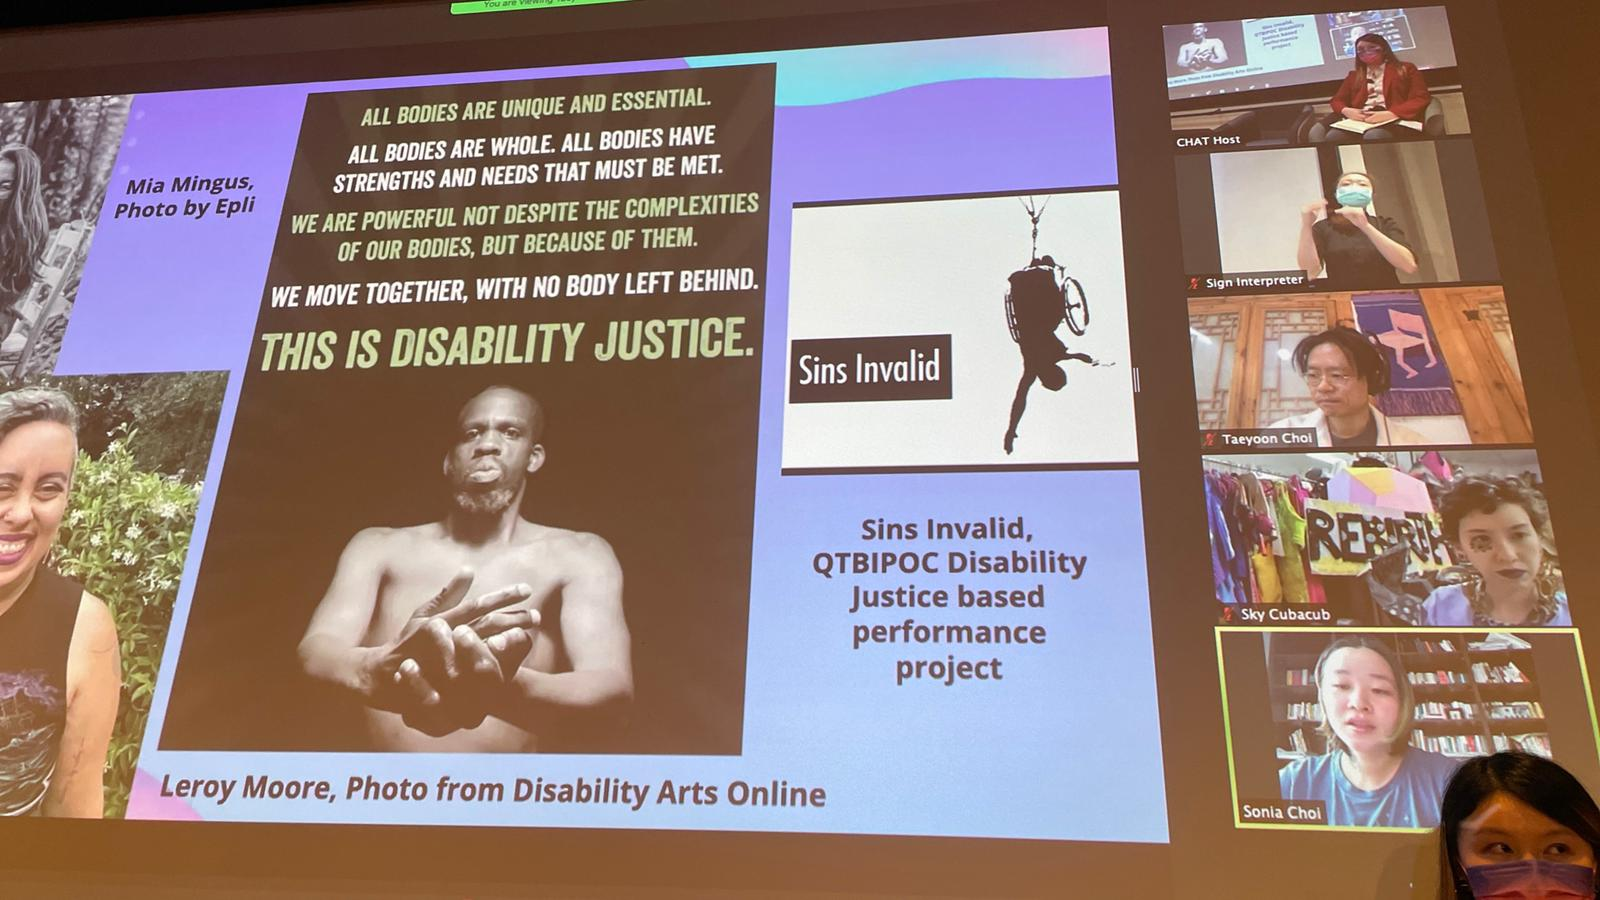 Powerpoint slides of Disability Justice activists from North America seen through zoom, projected onto a screen at Eaton. It has a cropped image of activists Mia Mingus, Leah Lakshmi Piepzna-Samarasinha, and a non-cropped image of Leroy Moore and Sins Invalid.